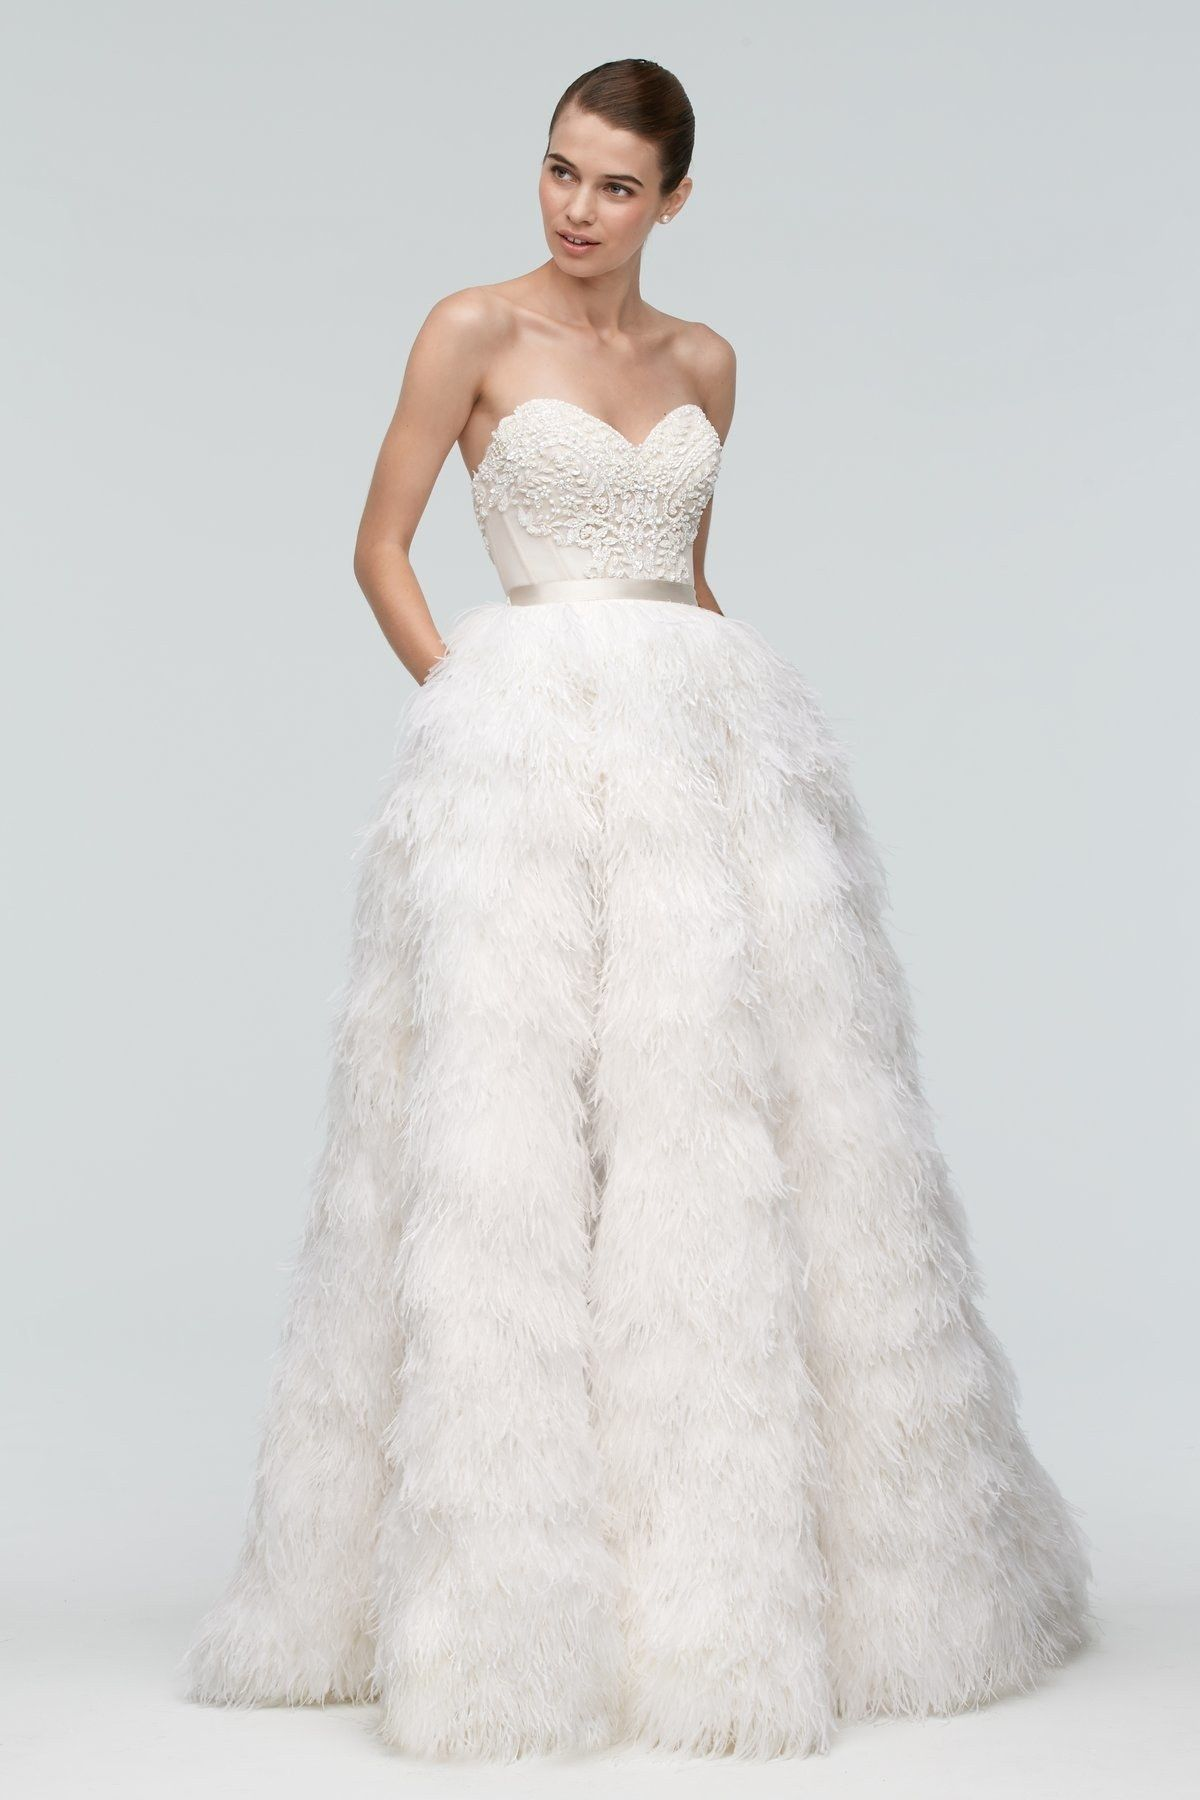 Wedding Dresses With Feathers Are Our Favorite New Wedding ...